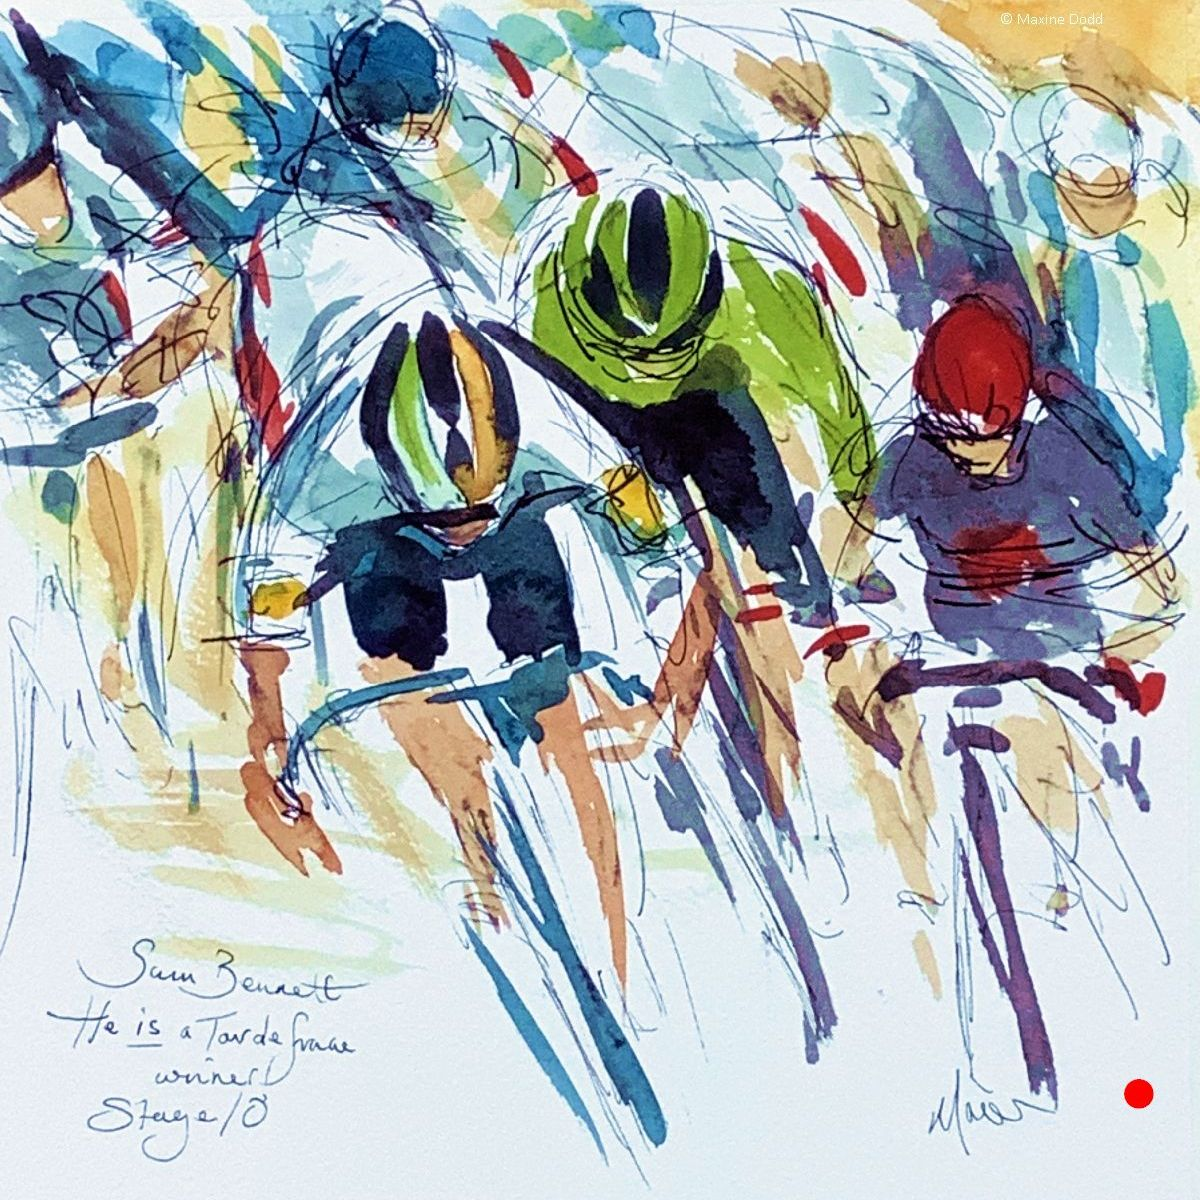 SOLD - Sam Bennett IS a Tour de France stage winner! Watercolour, pen and ink by Maxine Dodd